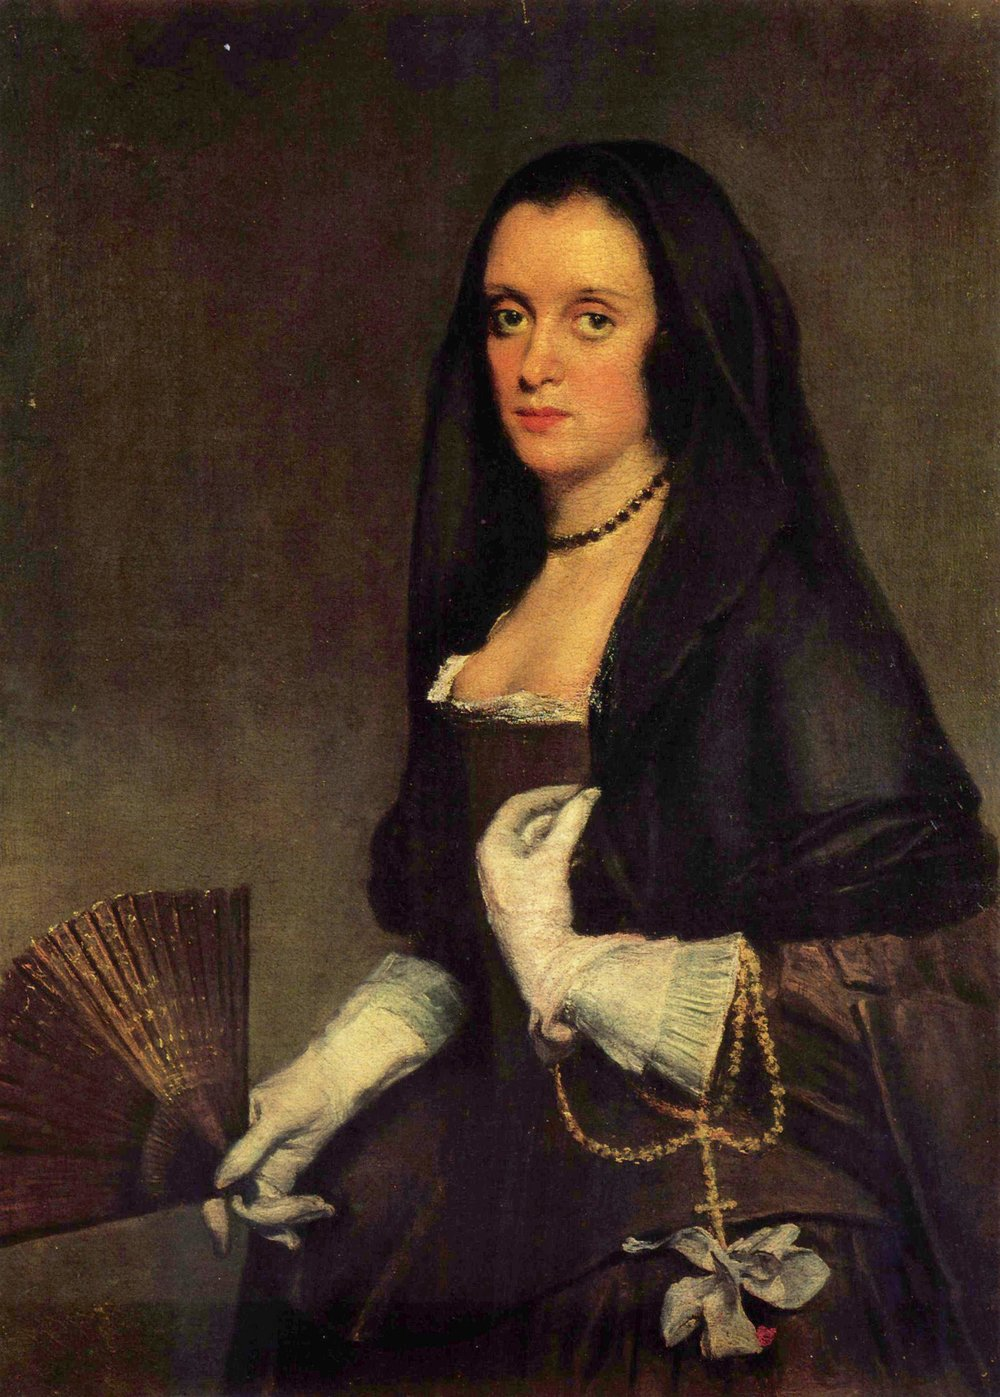 Diego Velázquez, The Lady with a Fan (1635), oil on canvas